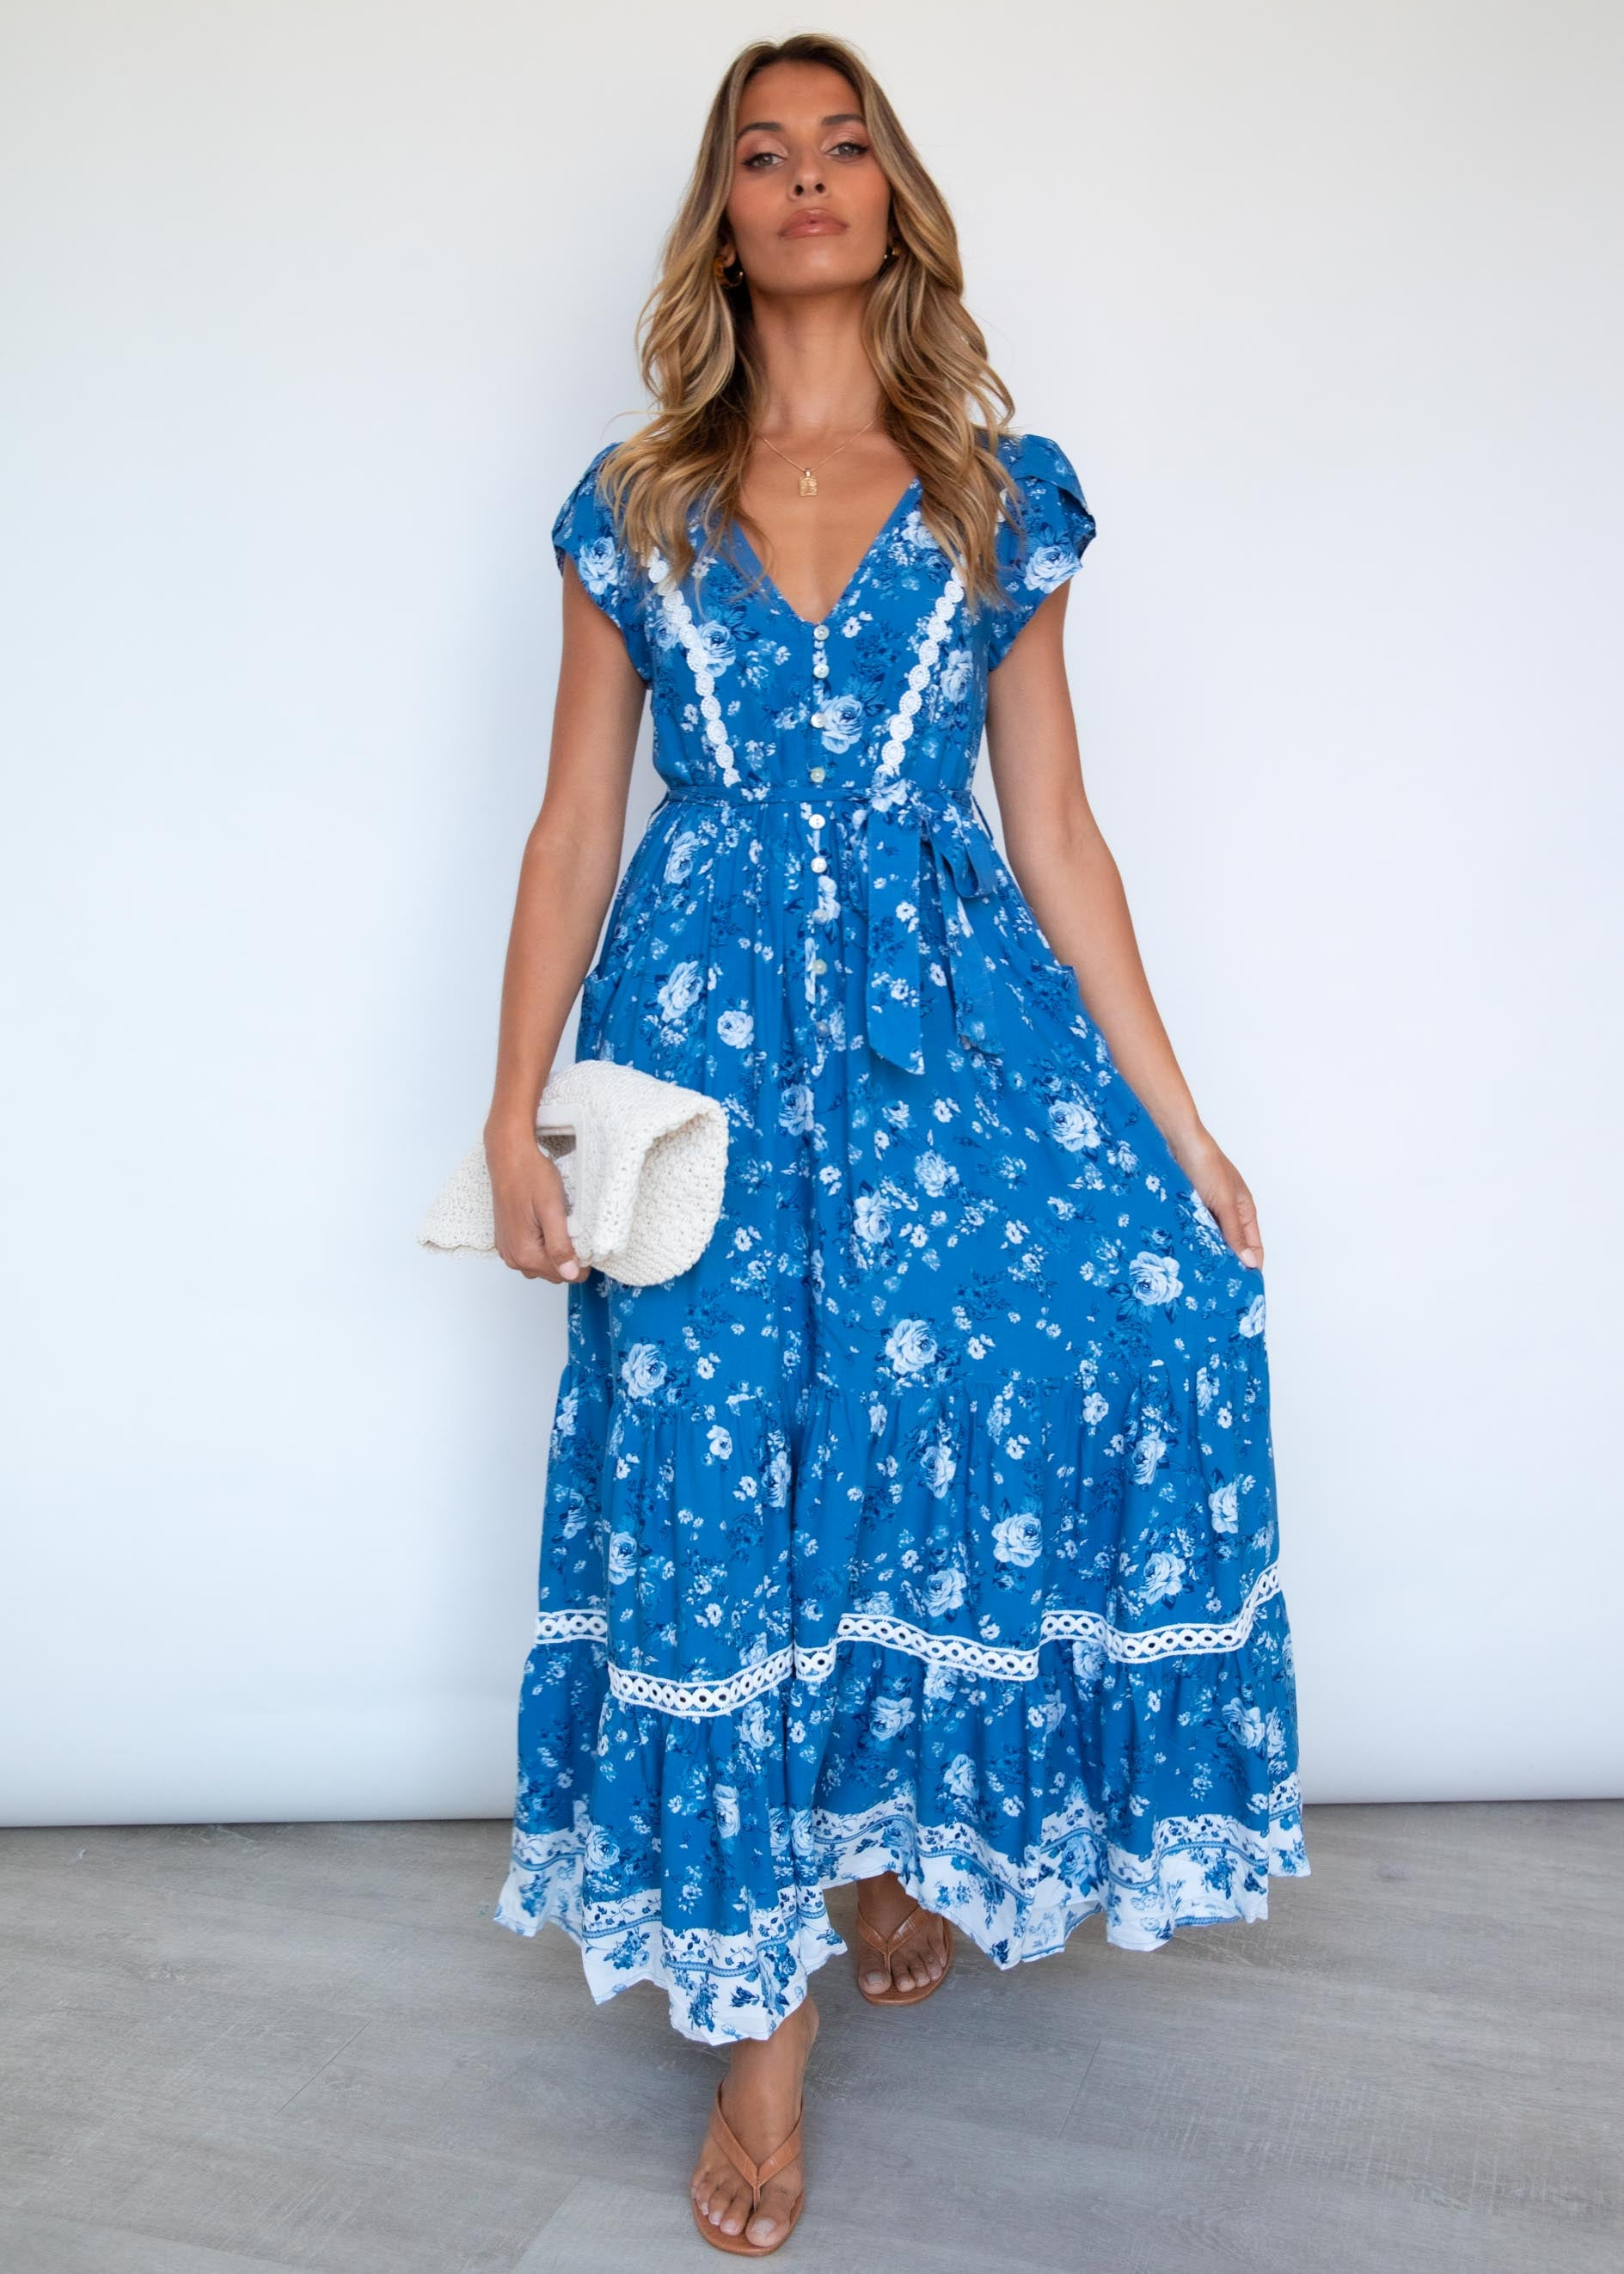 Zienna Maxi Dress - Floral Nights